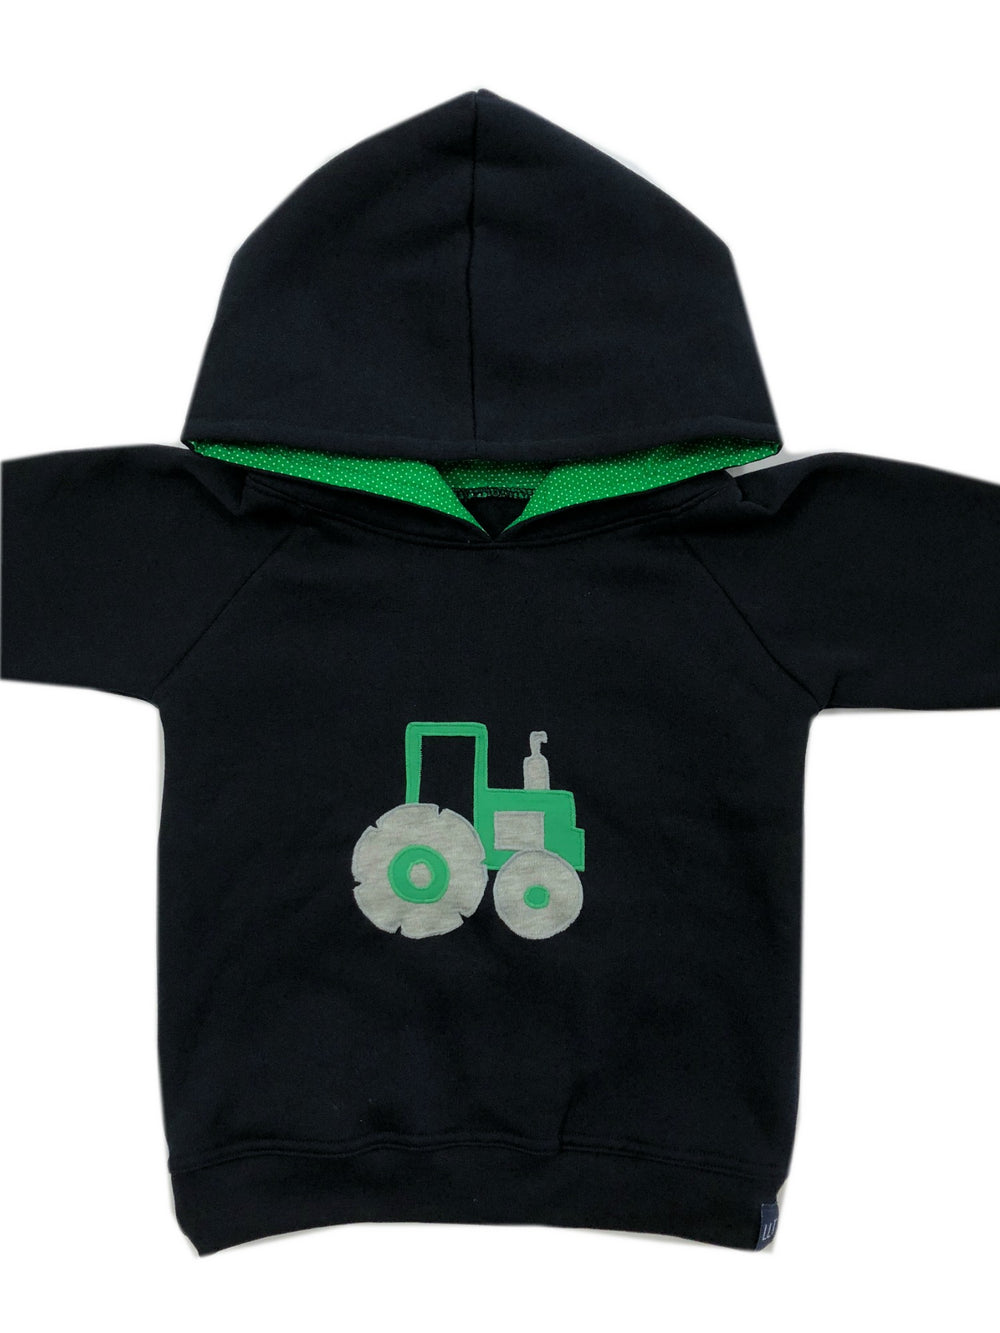 Hoodie | Green Tractor on Navy